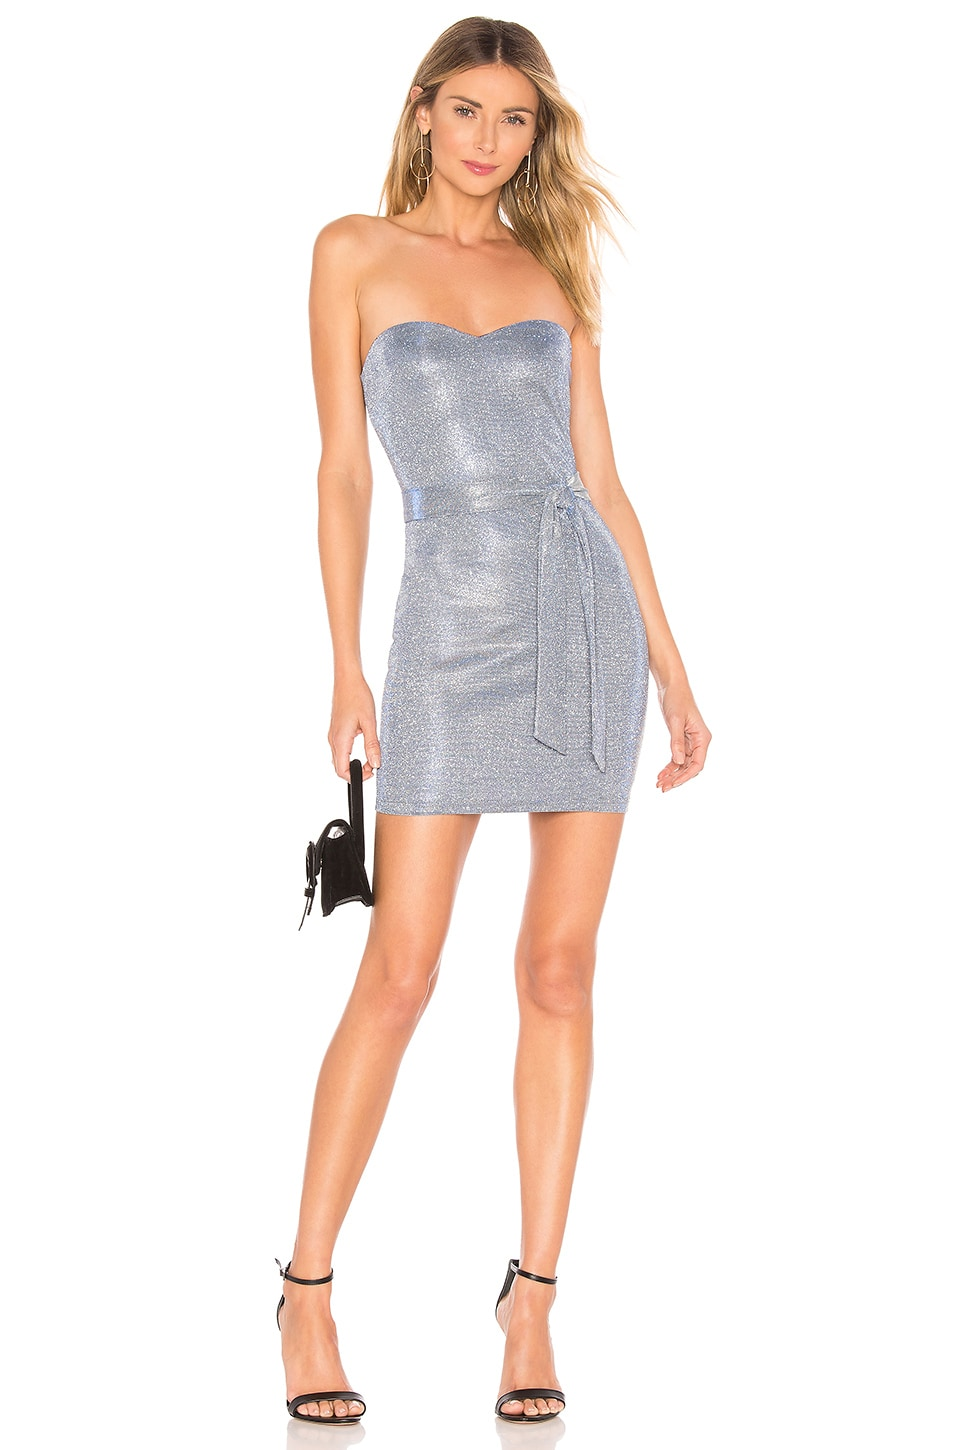 About Us Cynthia Strapless Dress in Silver